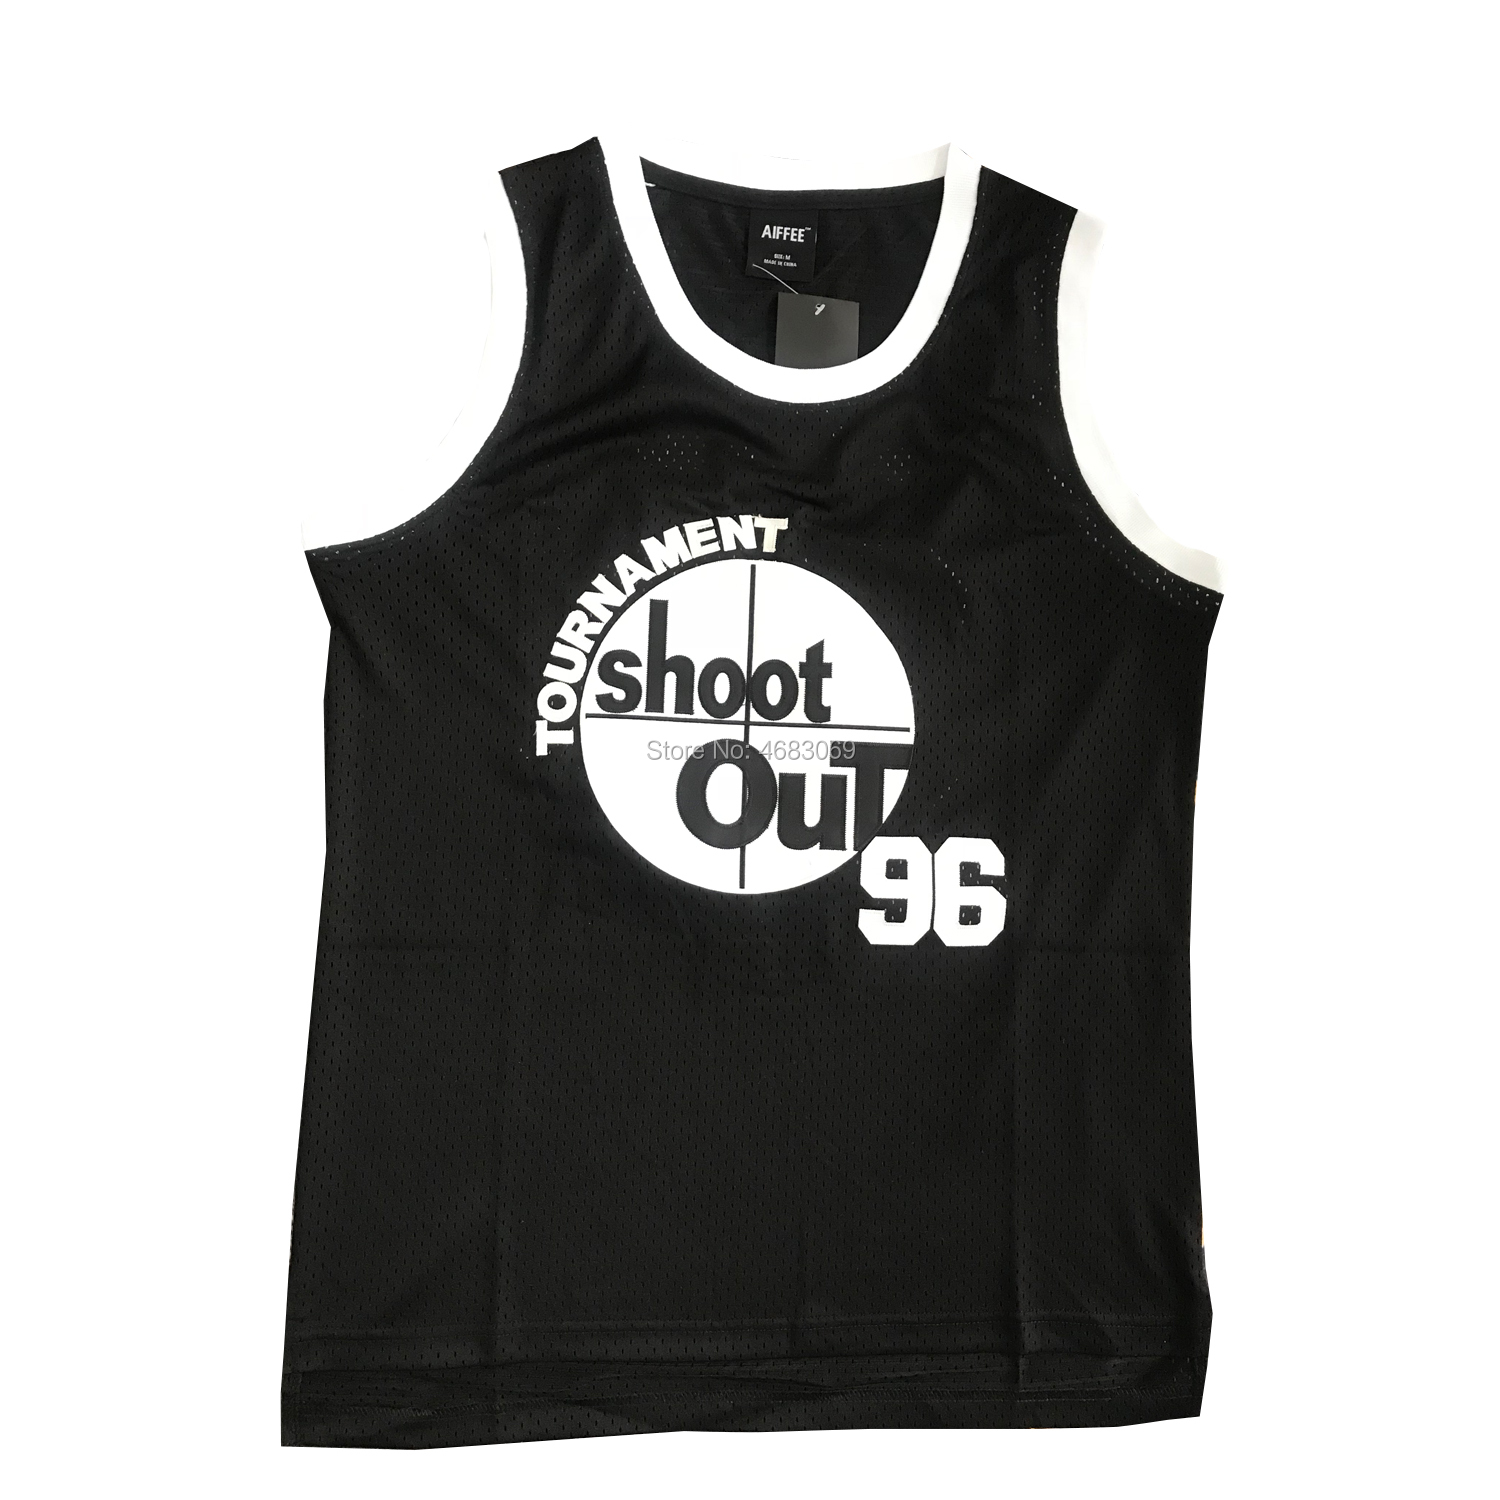 AIFFEE the Rim costume #96 Birdie Shoot out Movie Basketball Jersey 90s Hip Hop Party Clothing Jersey Black US STOCK image